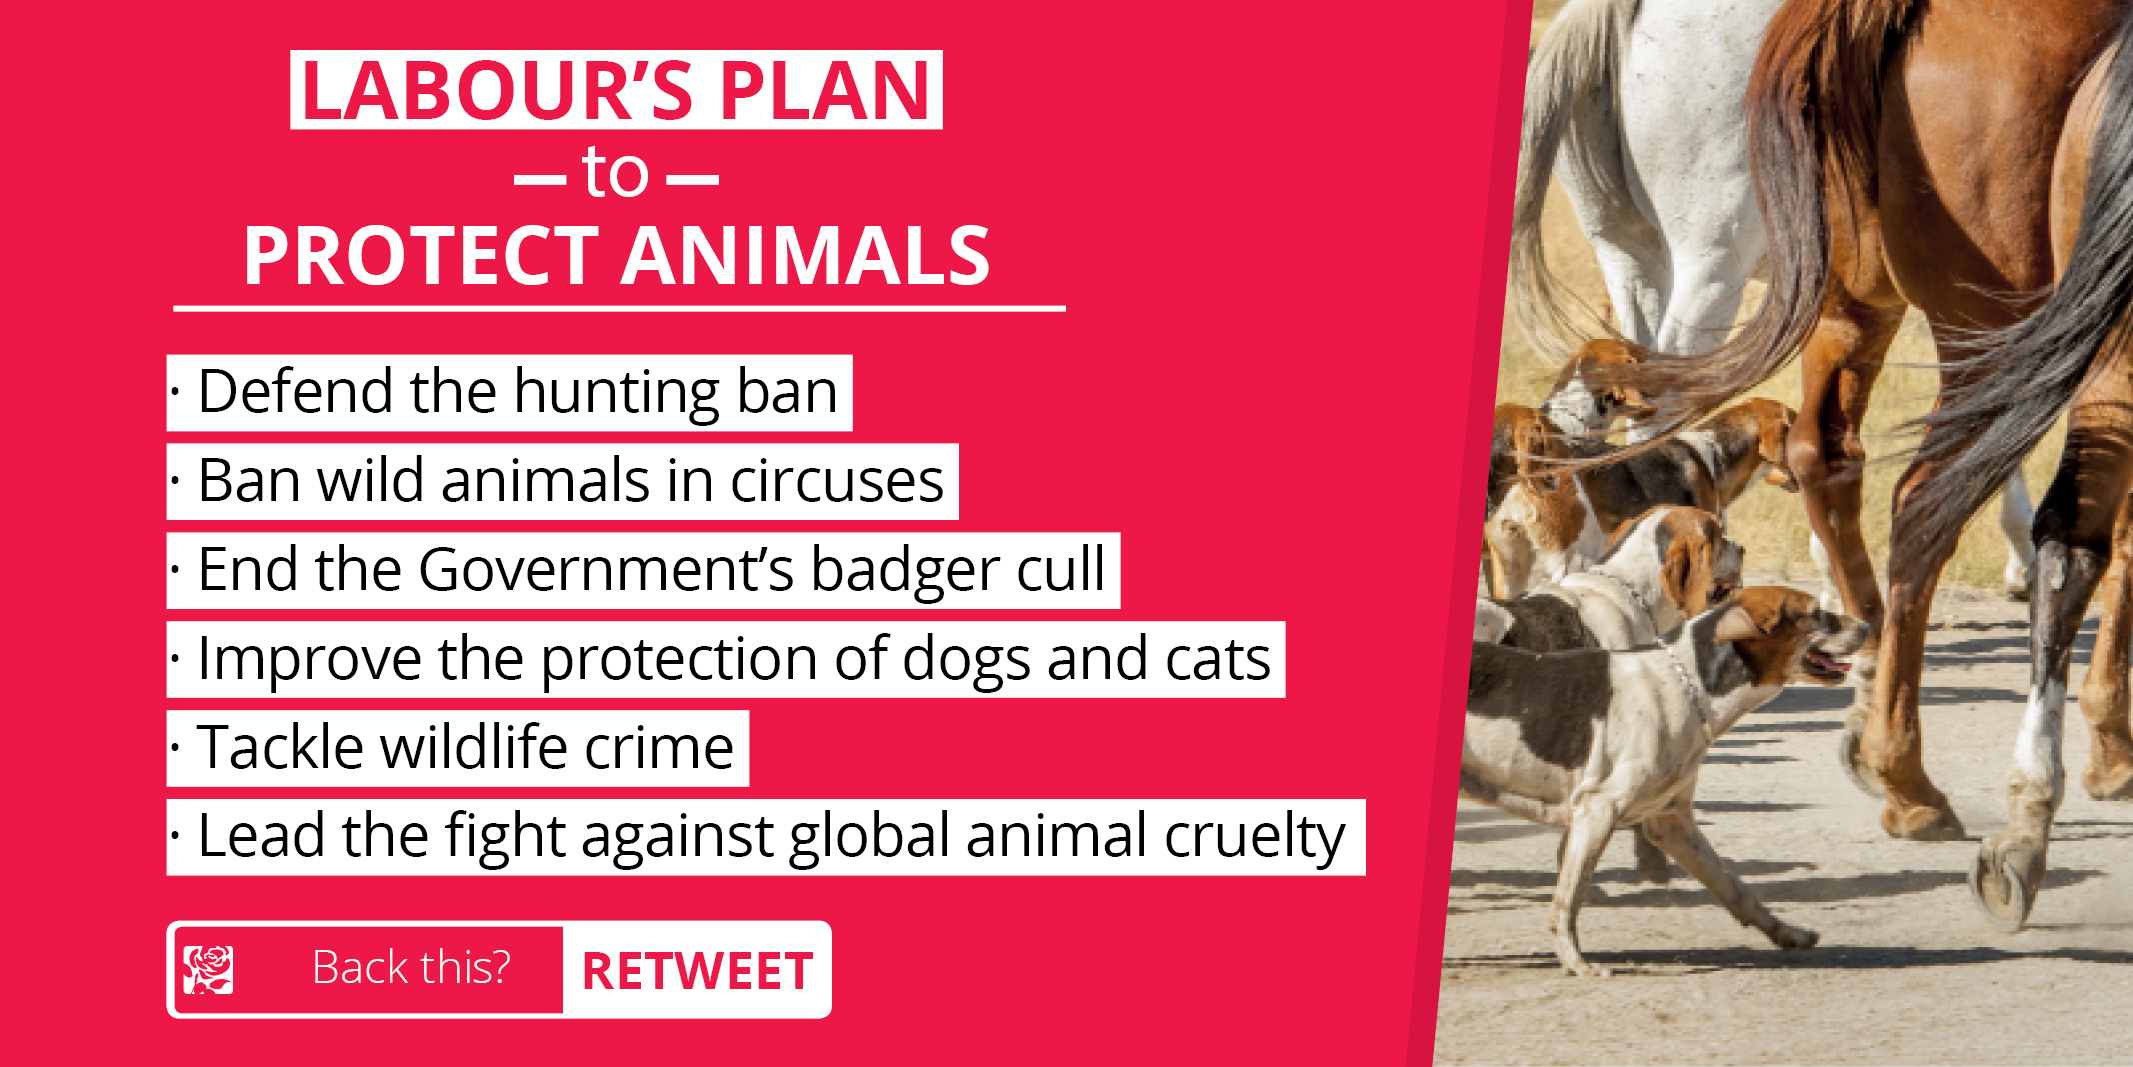 animal_protection_plan_-_twitter_image.png